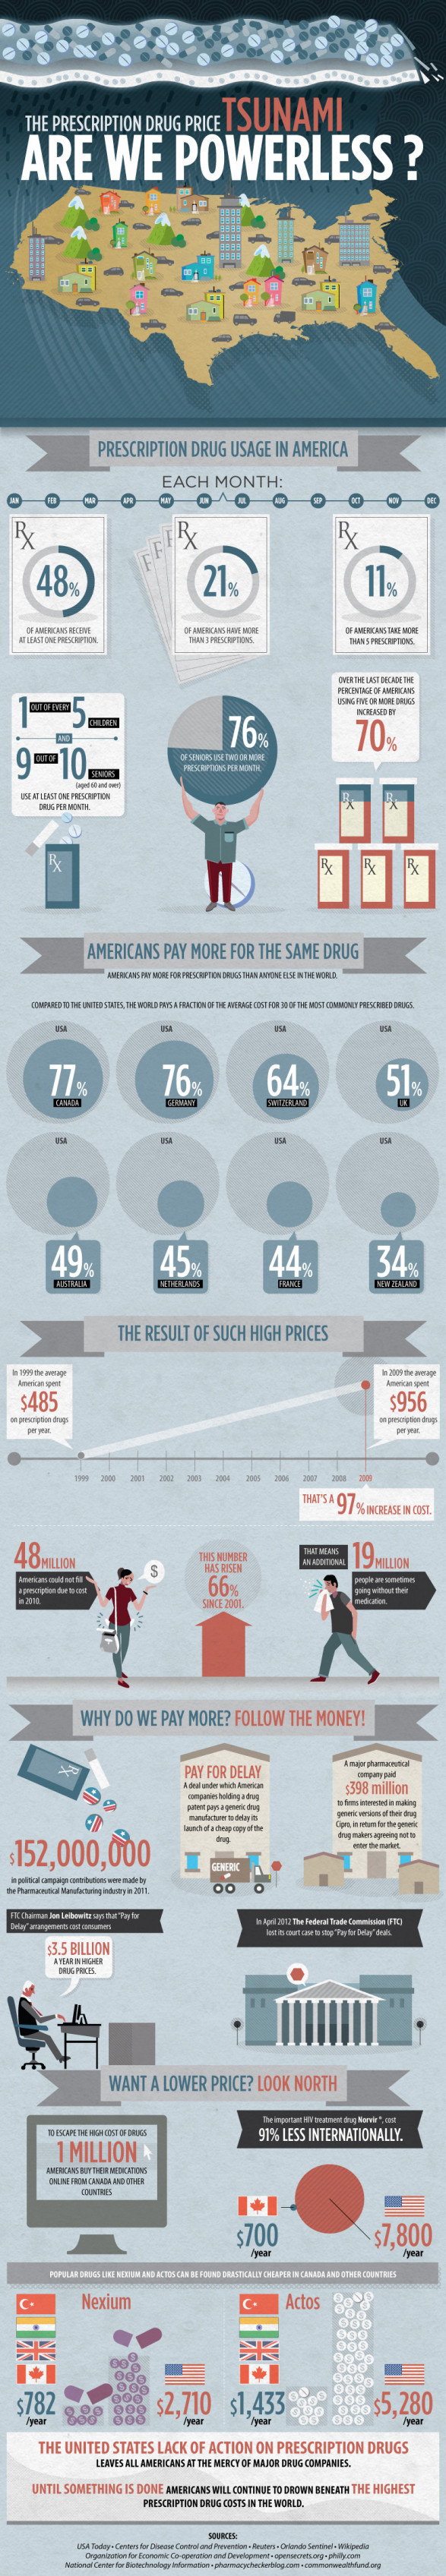 The Prescription Drug Price Tsunami - Are We Powerless?